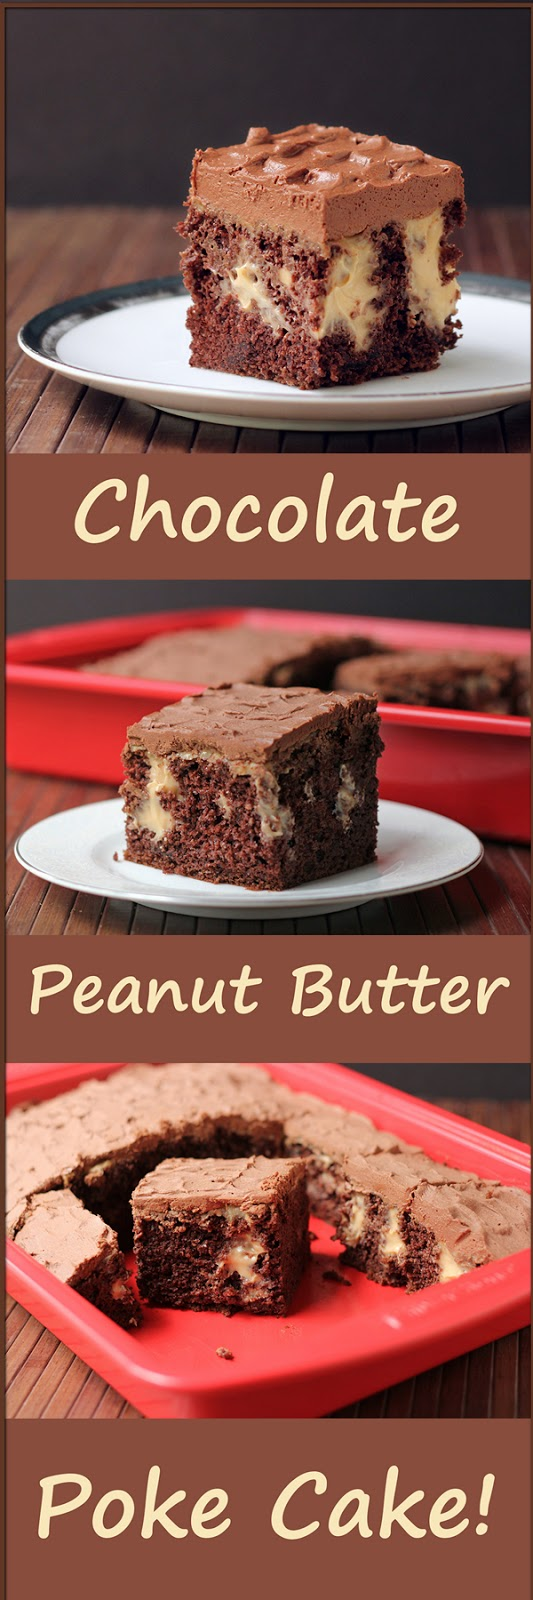 Chocolate and Peanut Butter Pudding Poke Cake